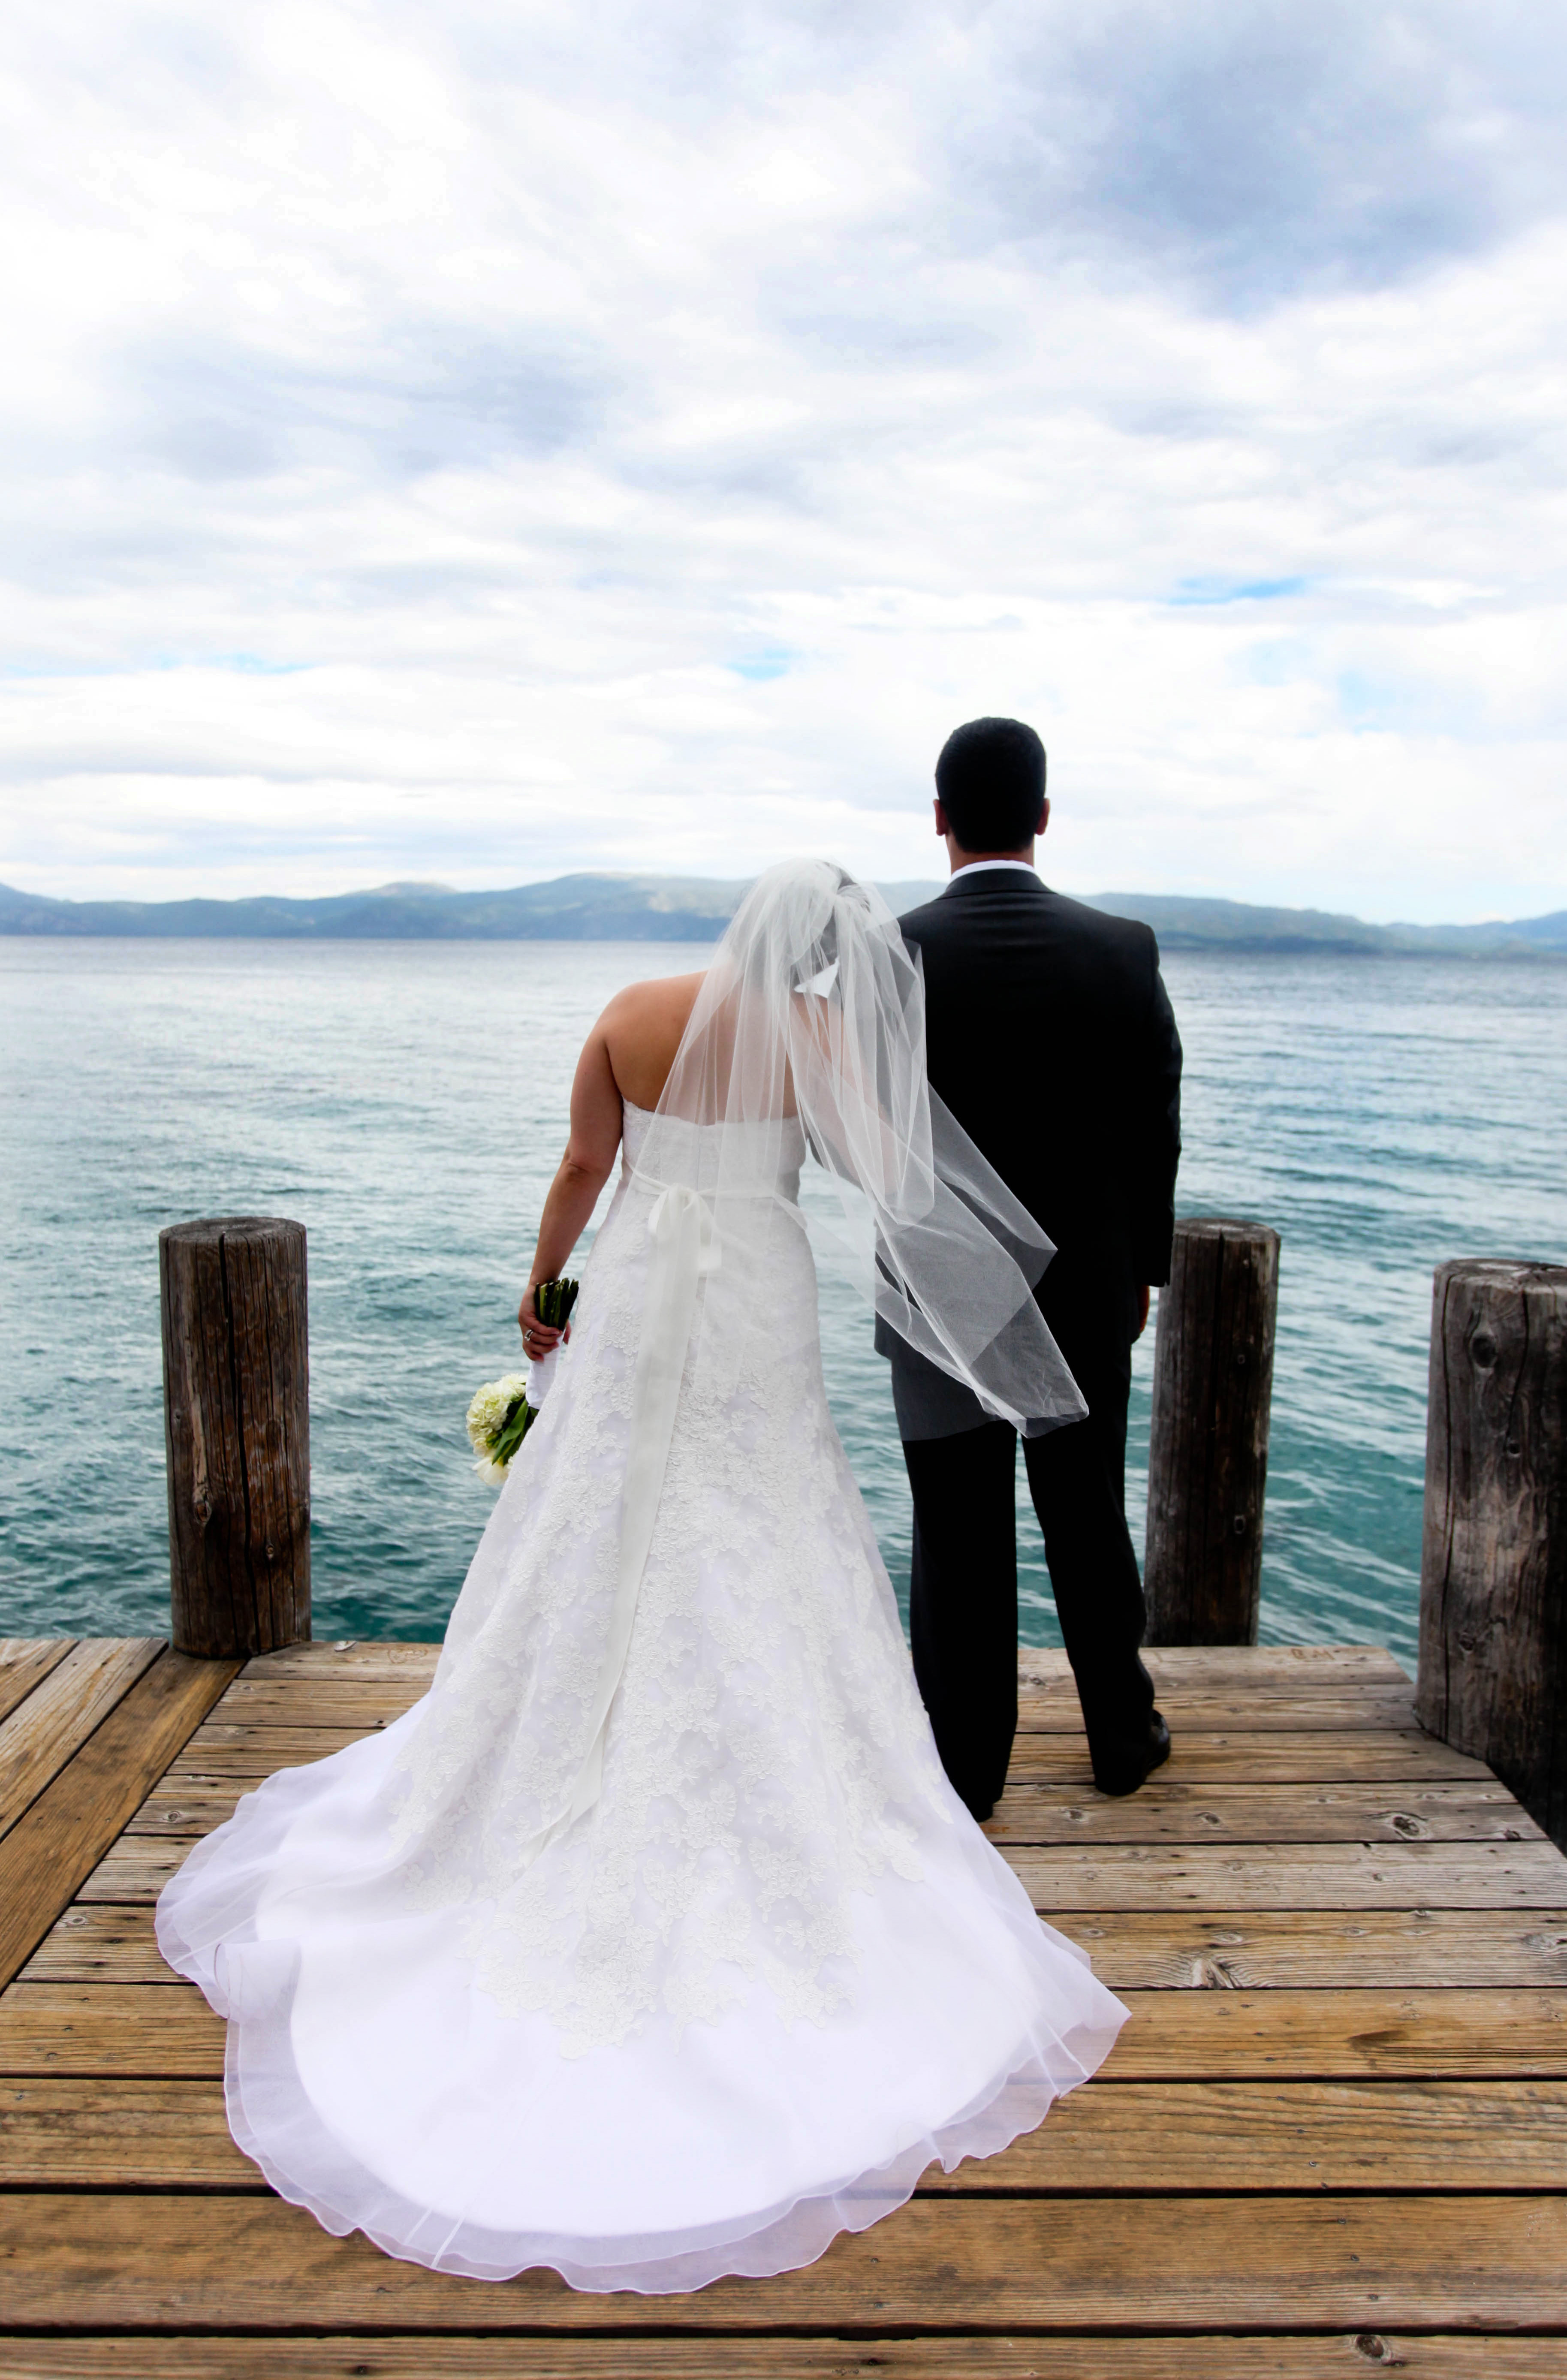 Wedding Dresses, Veils, Fashion, white, gray, dress, Veil, Lake, Tahoe, dock